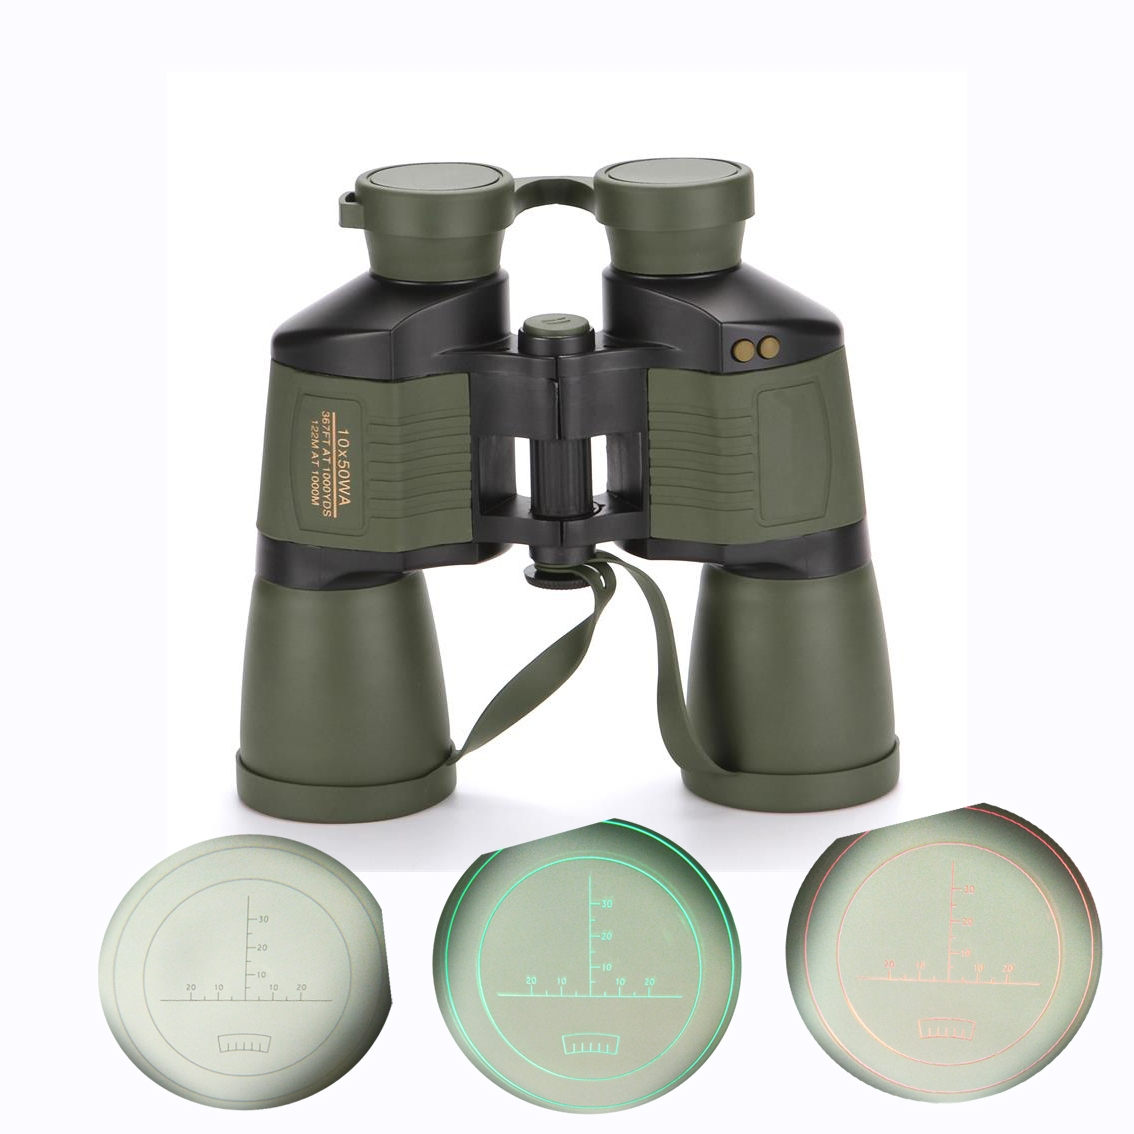 HD Brand 10X50 Auto focus waterproof rangefinder binoculars telescope hunting tourism optical outdoor sports eyepiece binoculars high times fmc 20x35 hd waterproof portable binoculars telescope hunting telescope tourism optical outdoor sports eyepiece